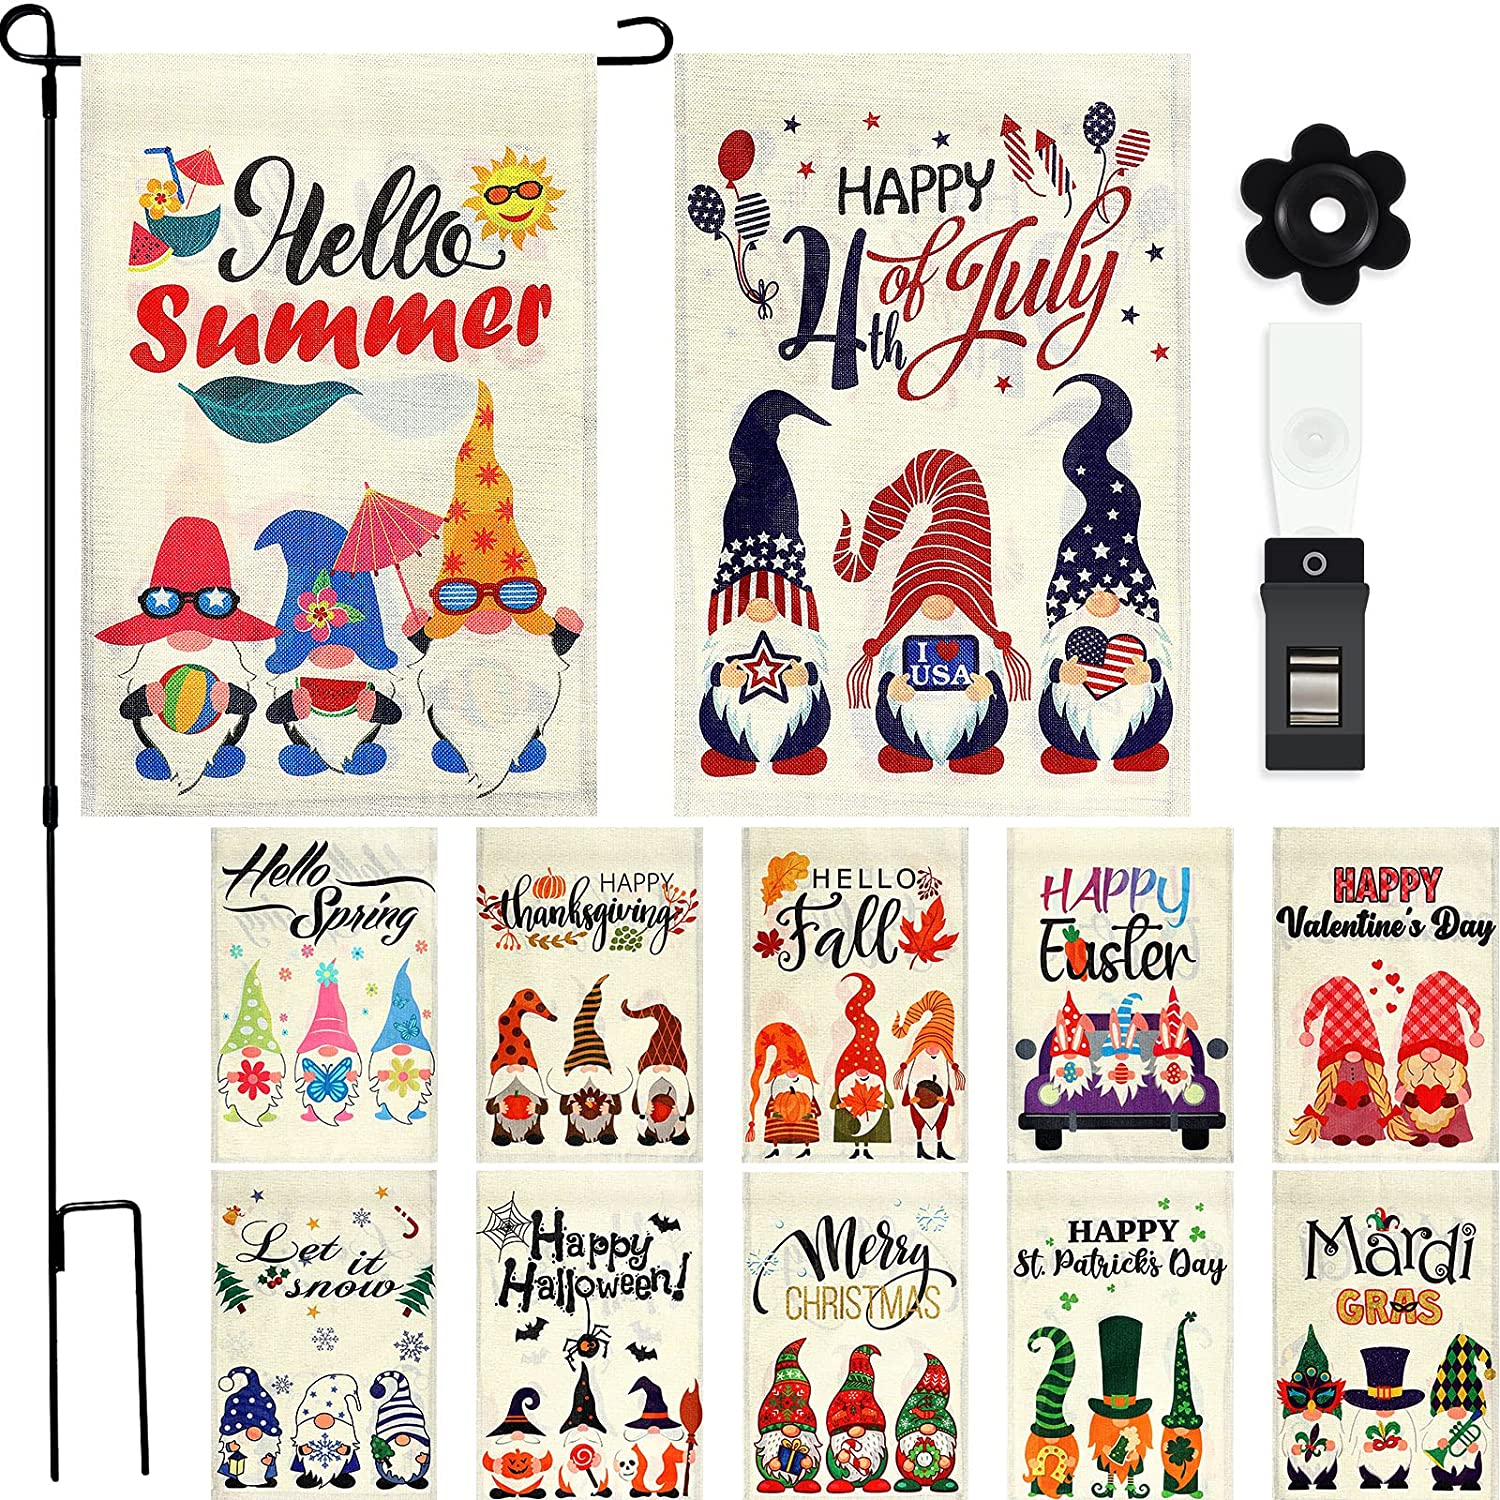 12 Pieces Seasonal Gnome Garden Flag Set Double Sided Holiday House Flag Vertical Decorative Outdoor Flag Welcome Yard Flag with Flag Stopper, Flagpole and Clip for Holiday Decoration, 12 x 18 Inch